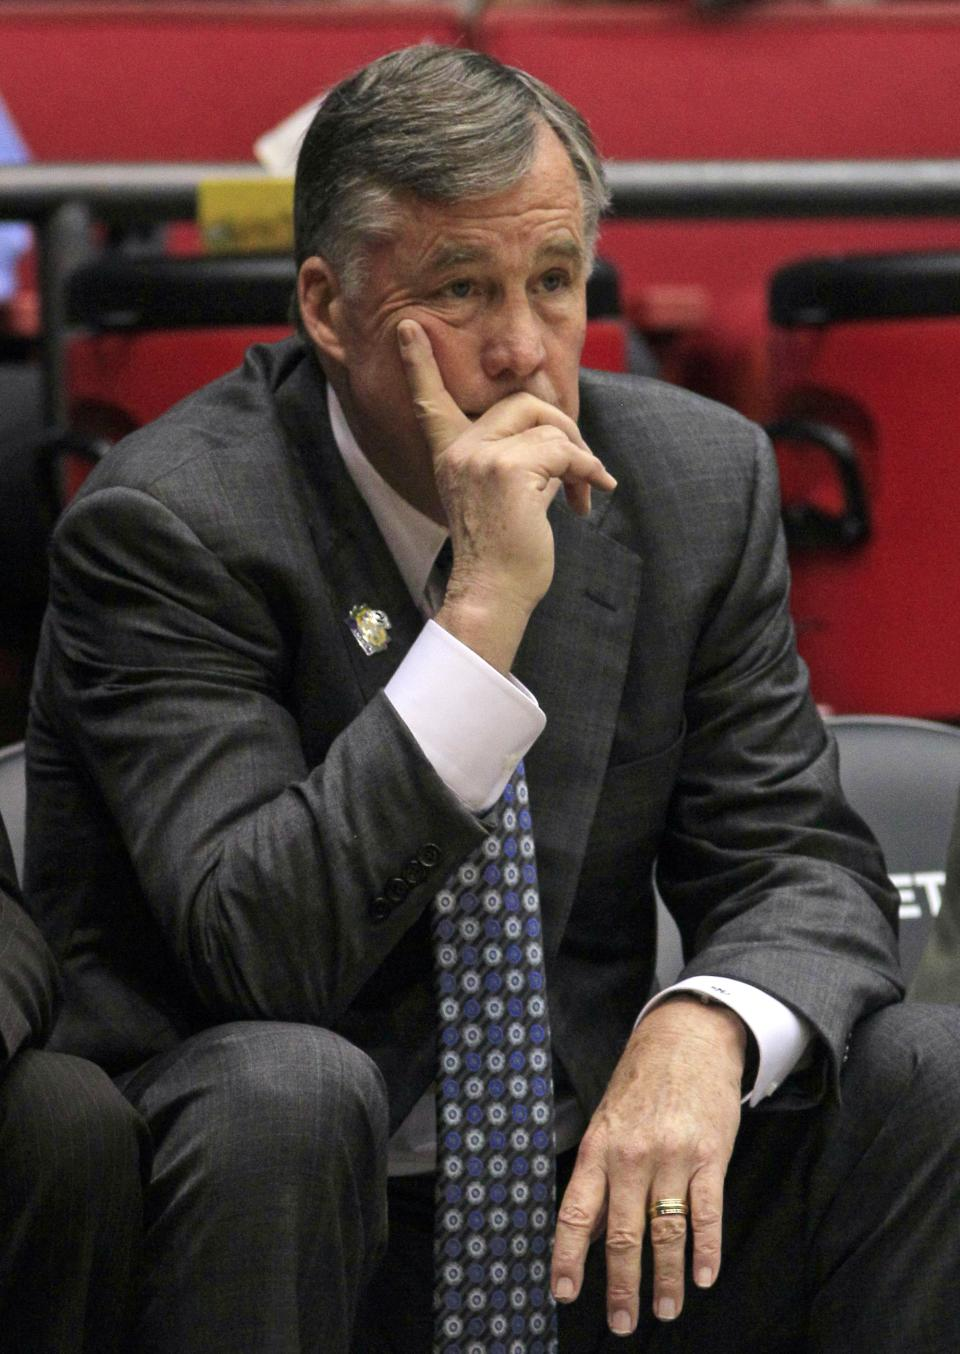 California head coach Mike Montgomery watches from the bench in the first half of an NCAA tournament first-round college basketball game against South Florida, Wednesday, March 14, 2012, in Dayton, Ohio. (AP Photo/Al Behrman)